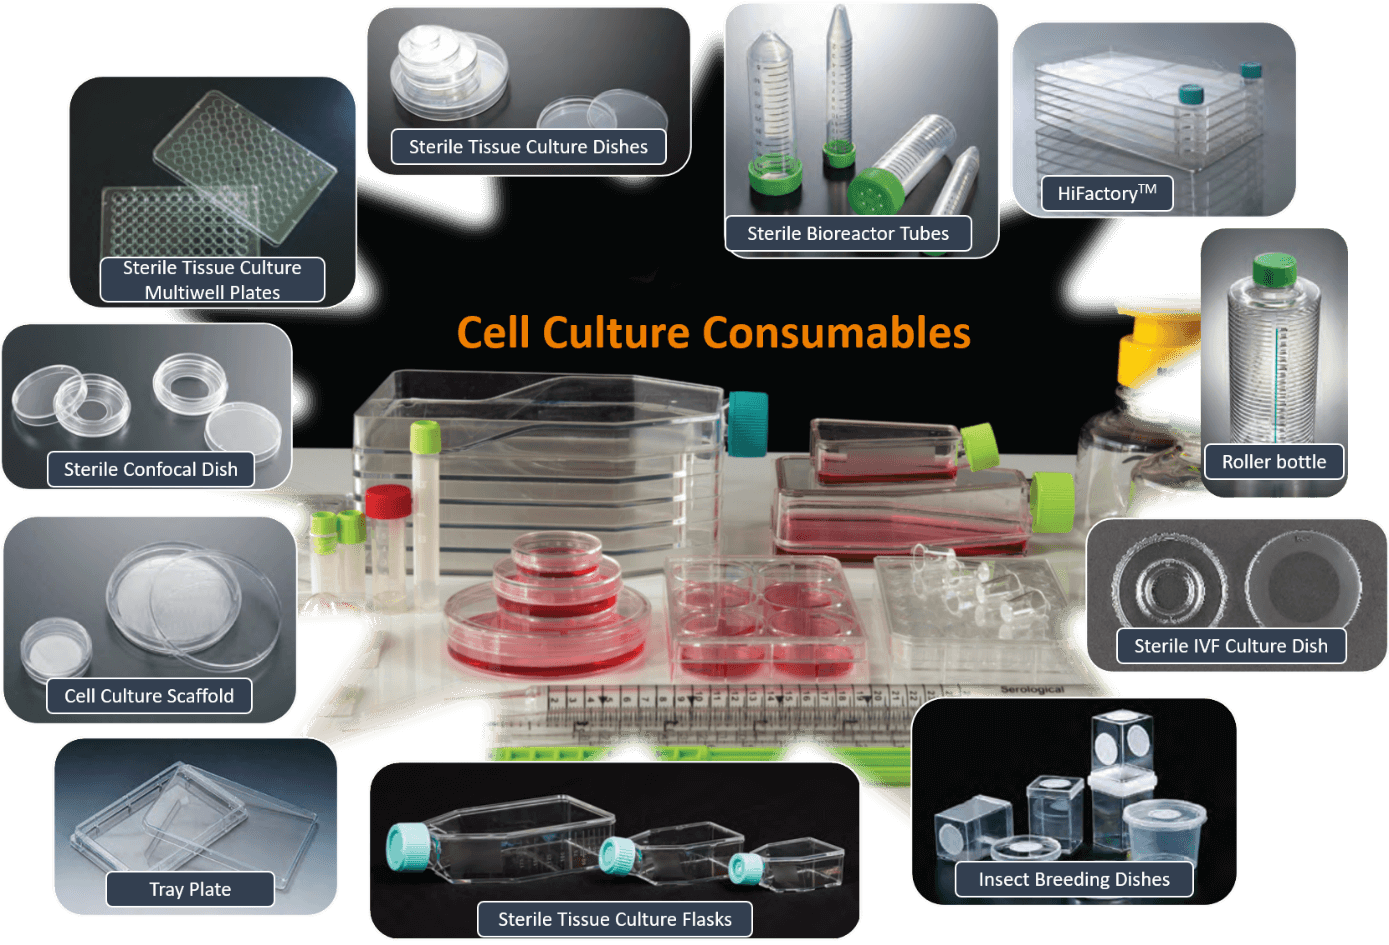 Cell Culture Consumables Overview